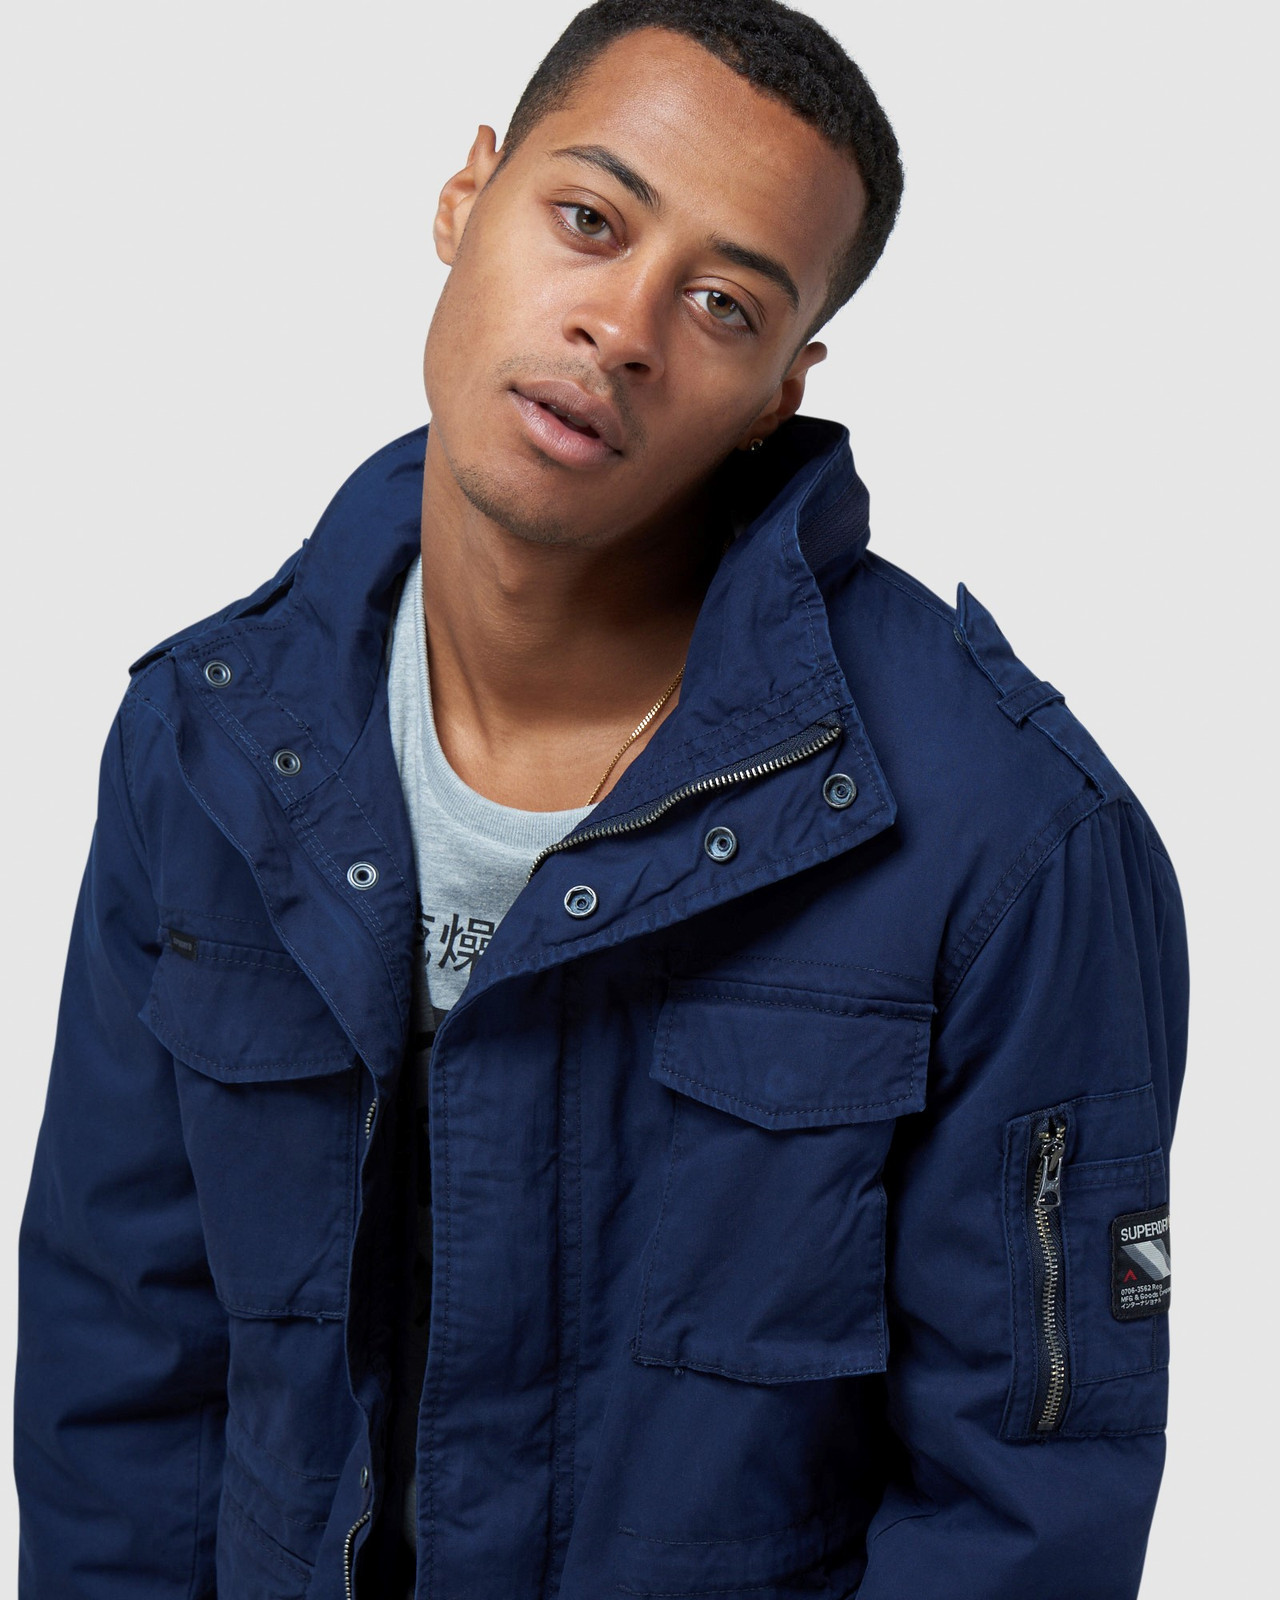 Superdry Mens CLASSIC RECRUIT JACKET Navy Military Jackets 5